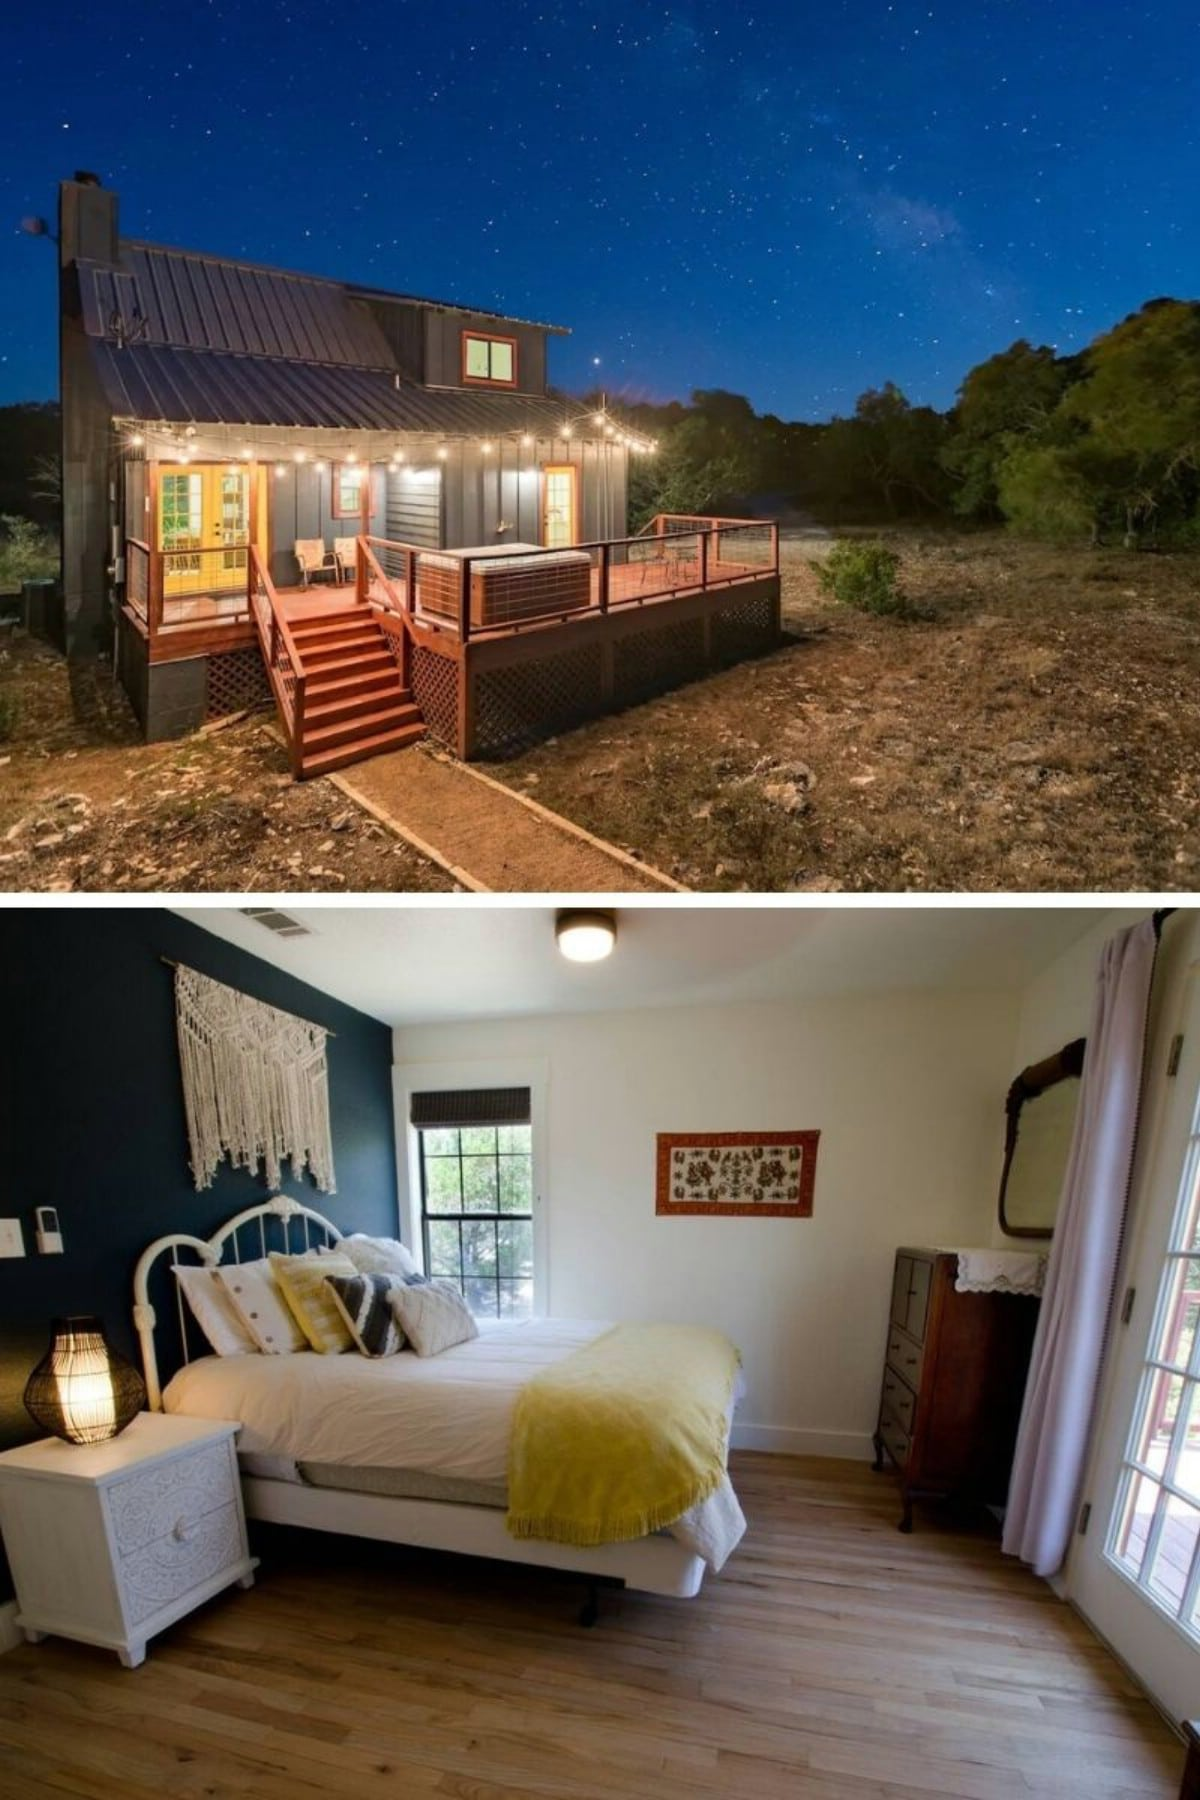 Adorable Cabin on 10 Private Acres With a Hot Tub – Wimberley, TX